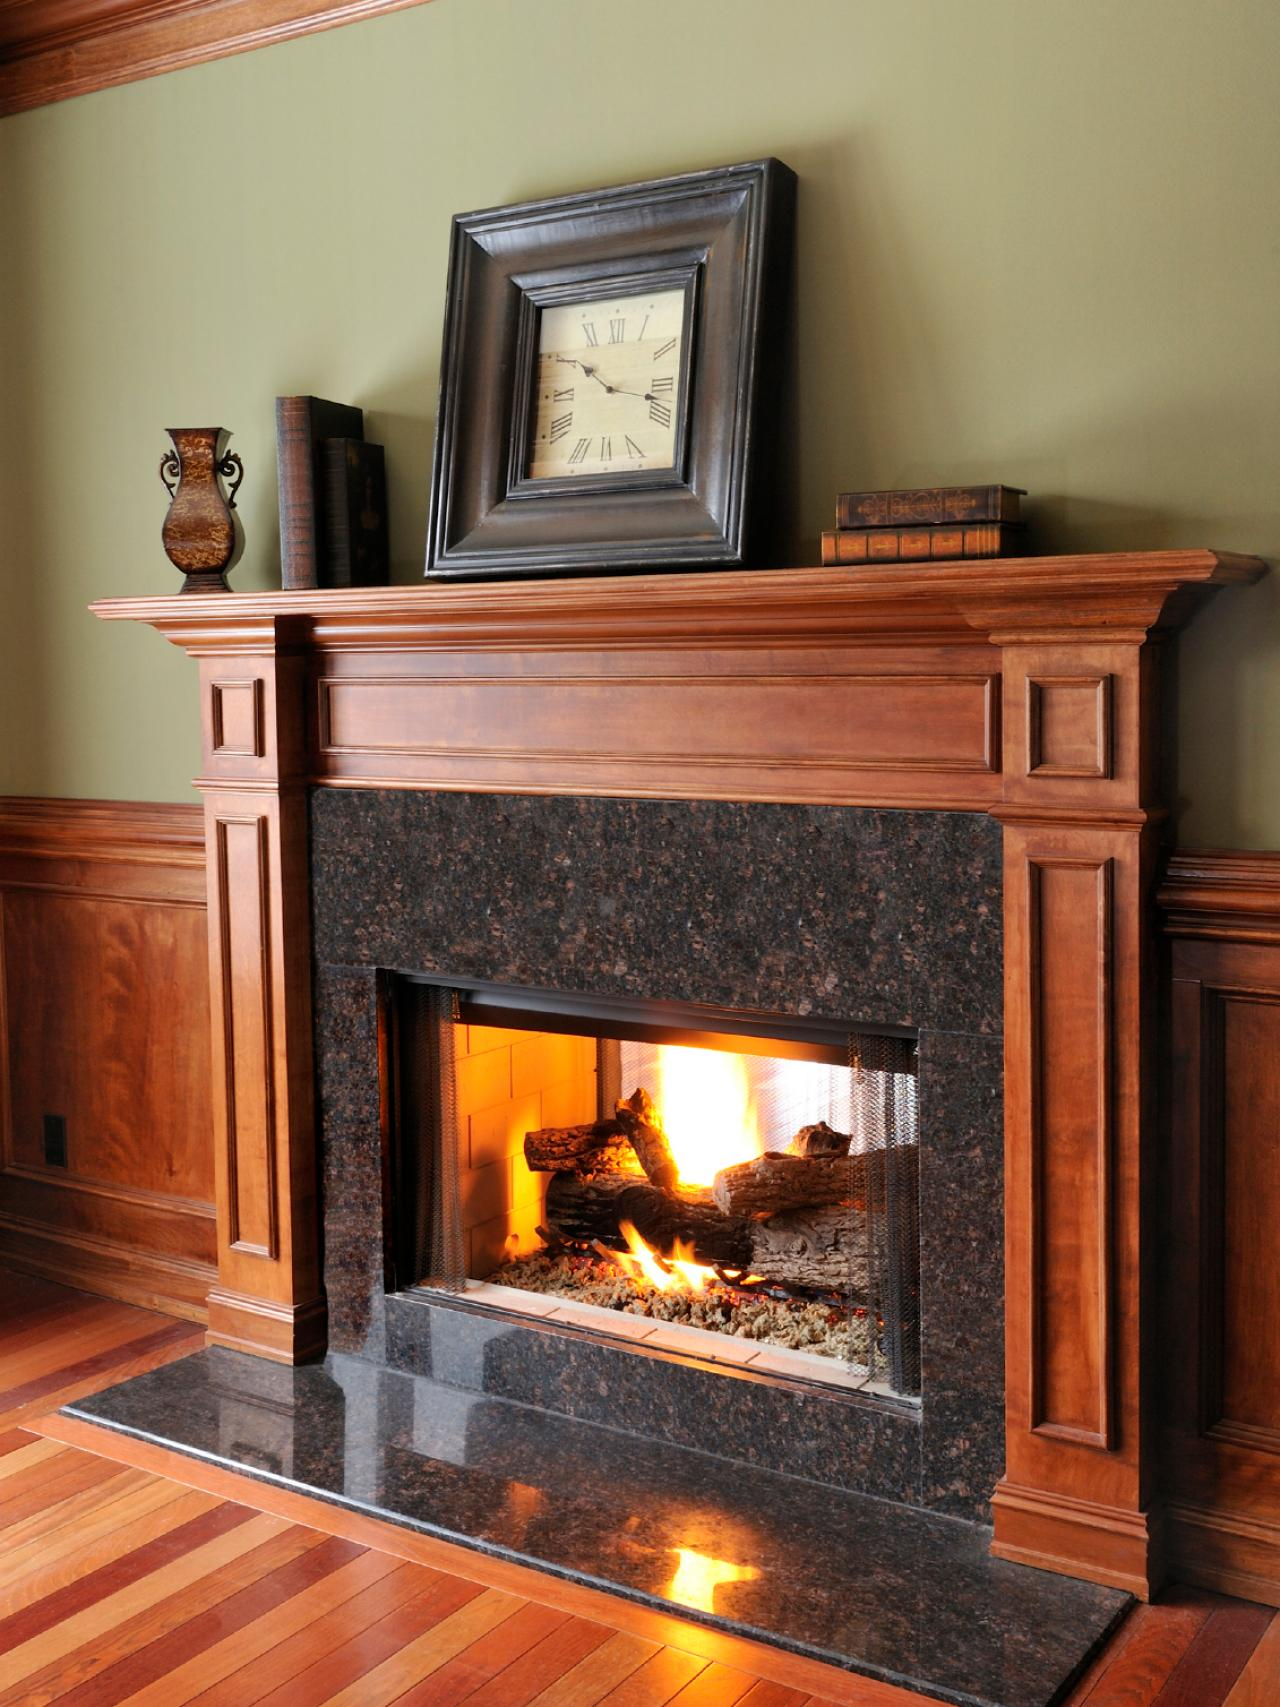 Stone Fireplace Surrounds Ideas All About Fireplaces And Fireplace Surrounds | Diy